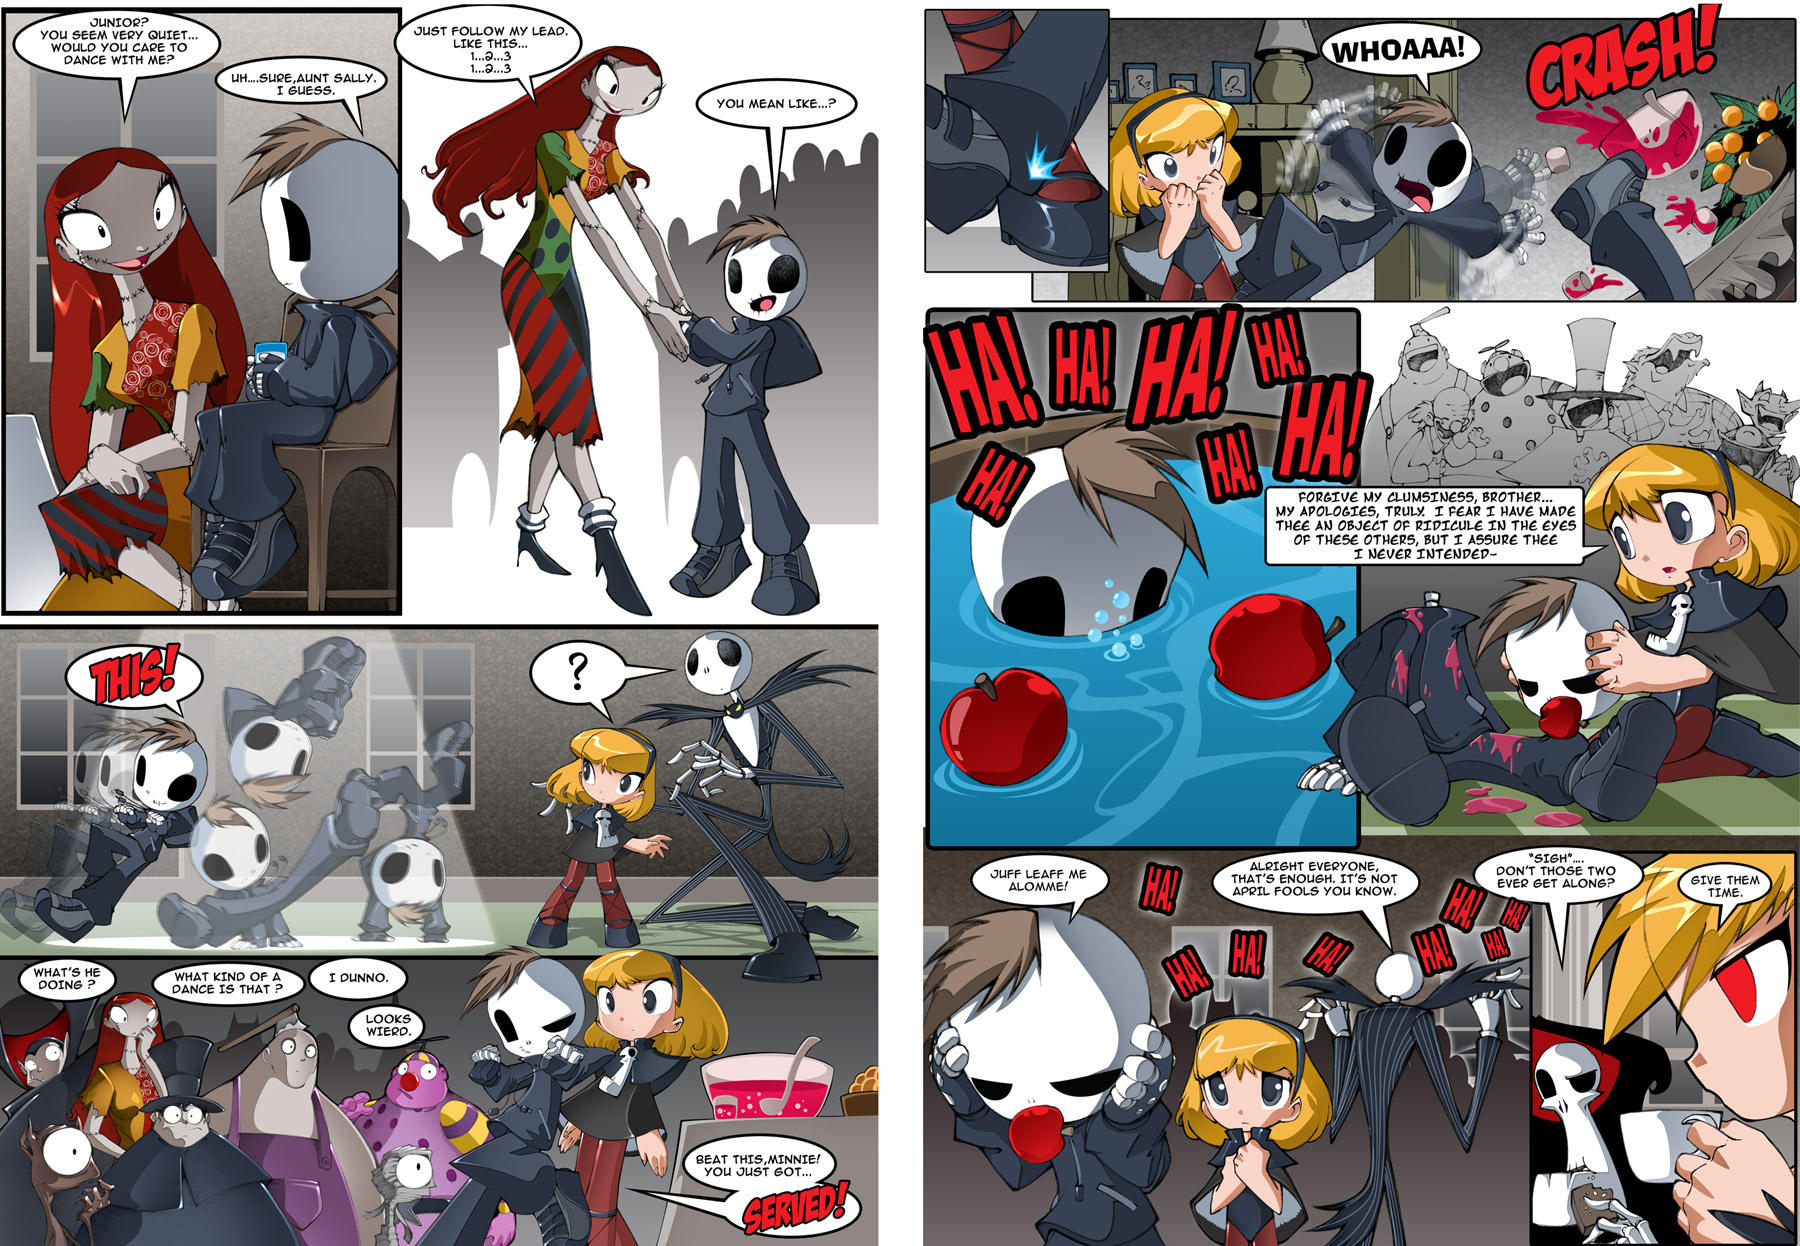 Grim tales p13_14 by bleedman